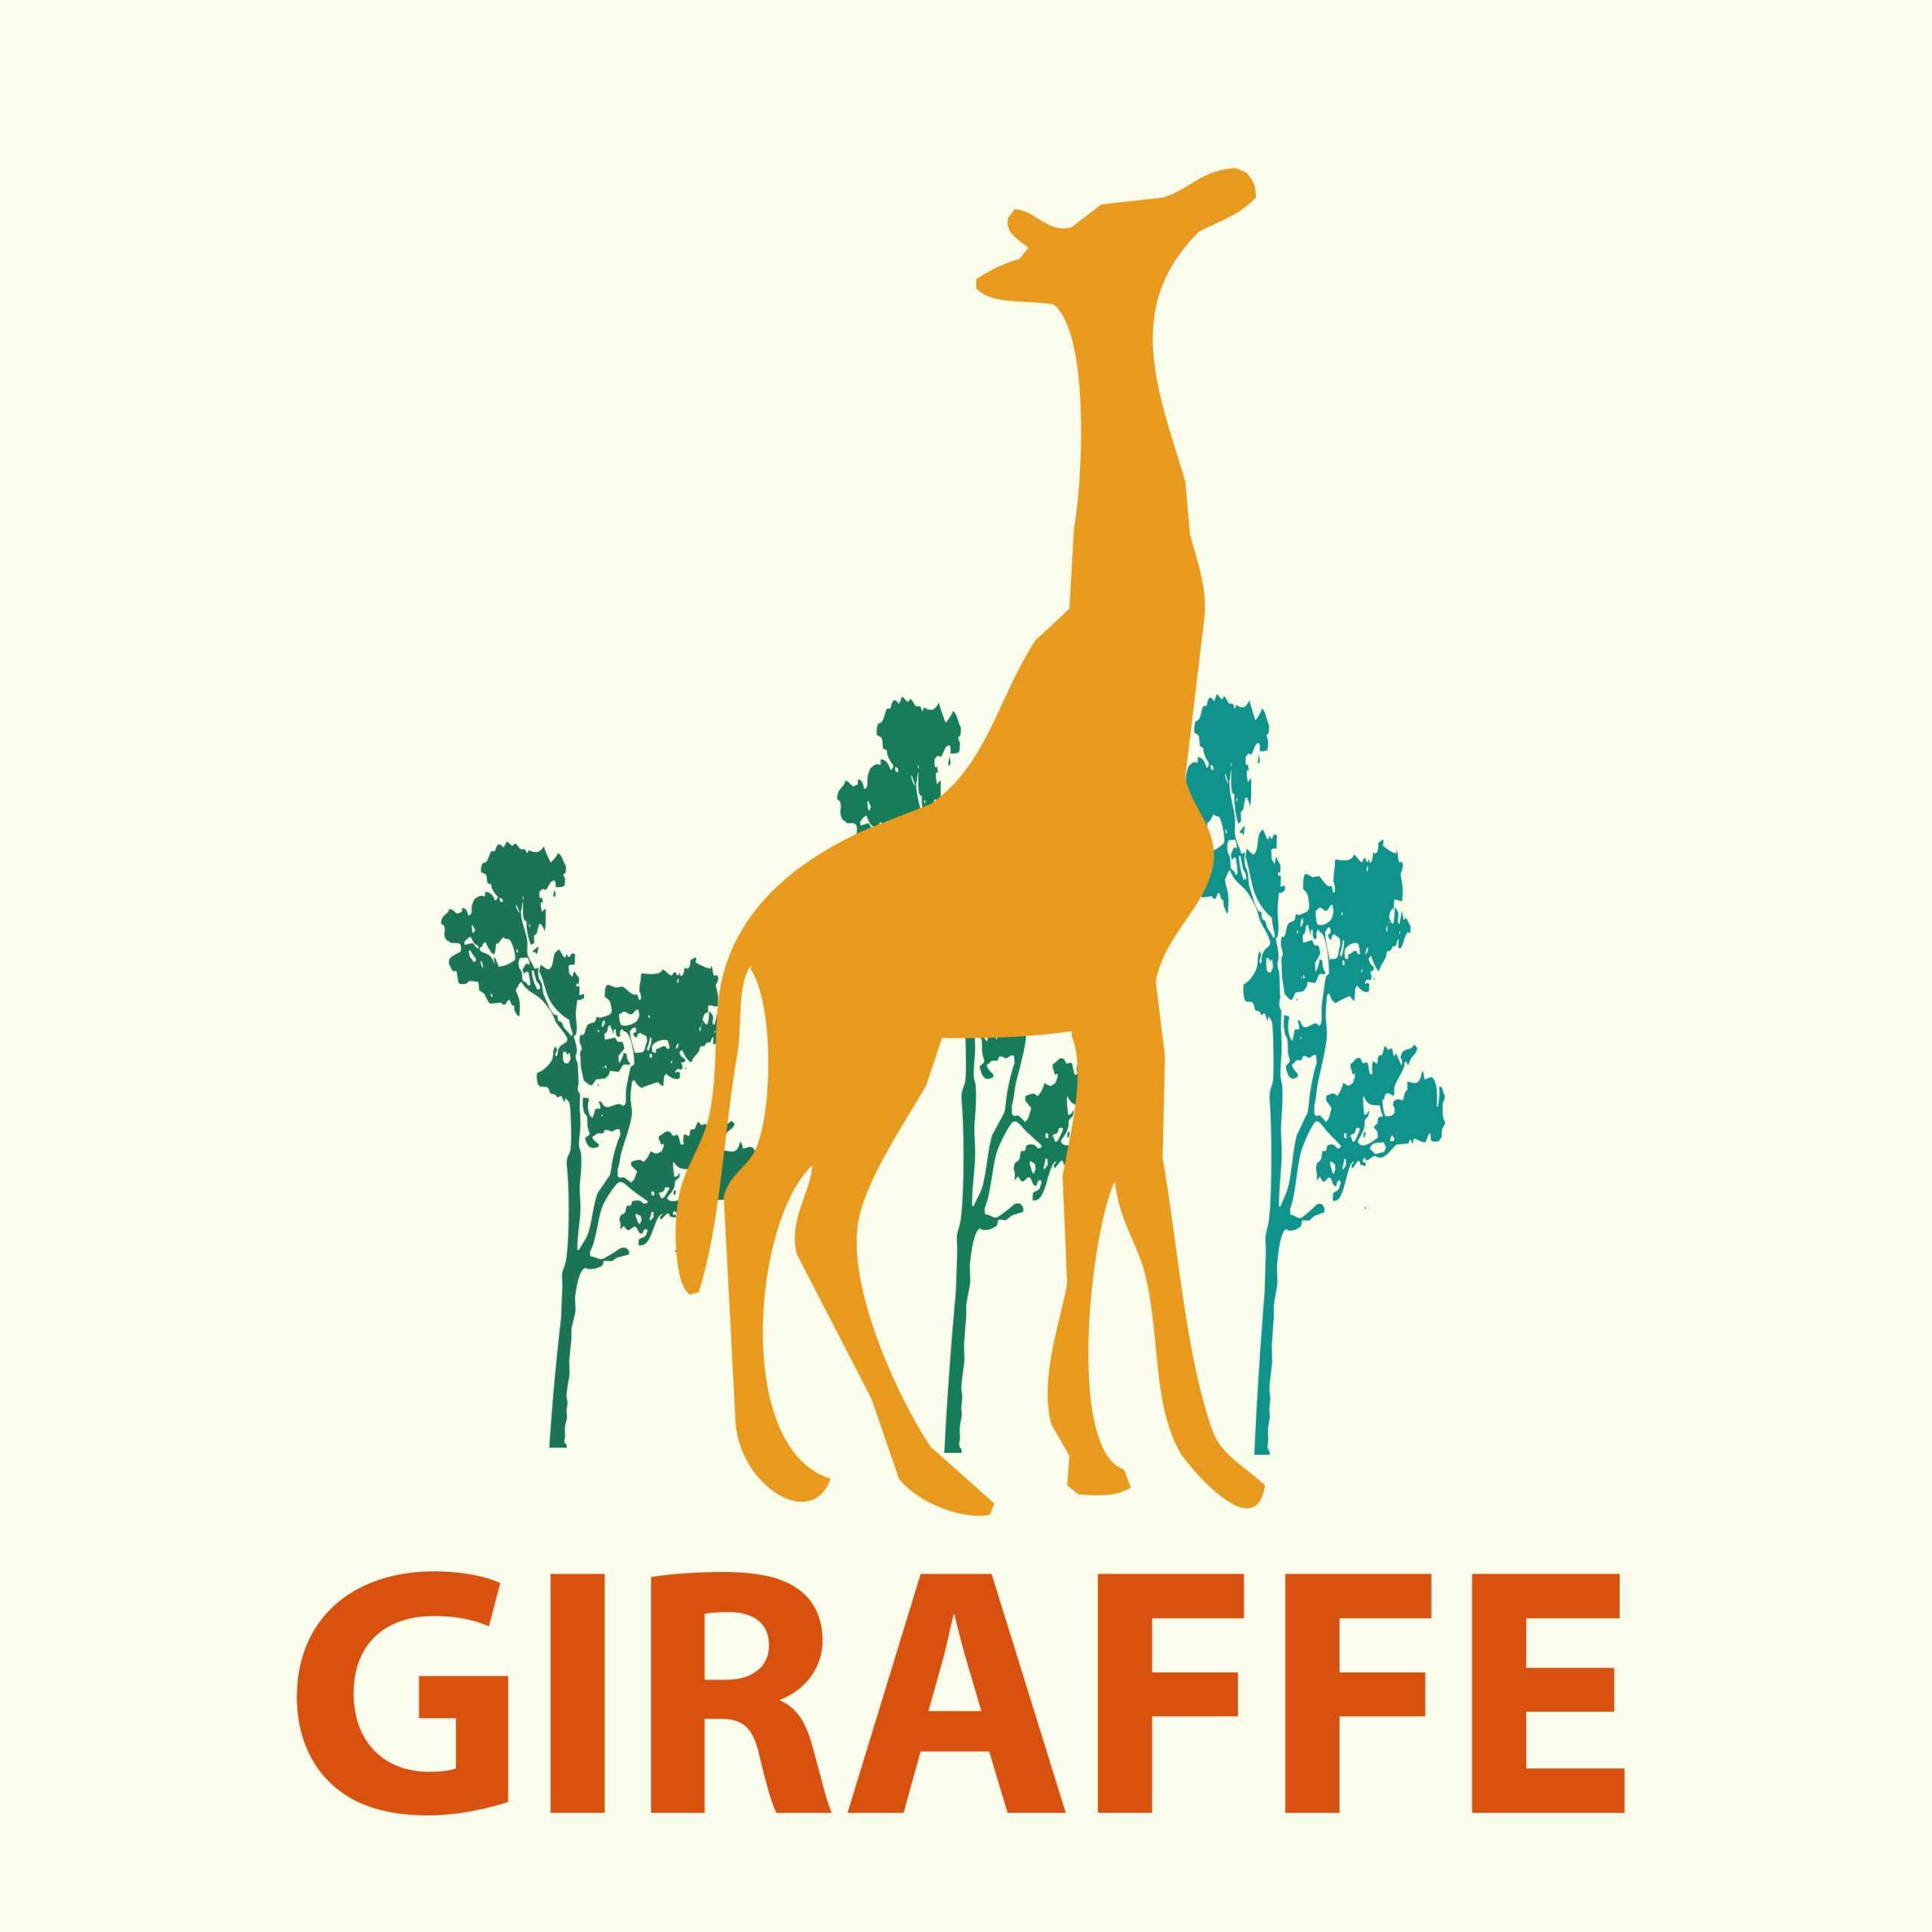 A giraffe illustration